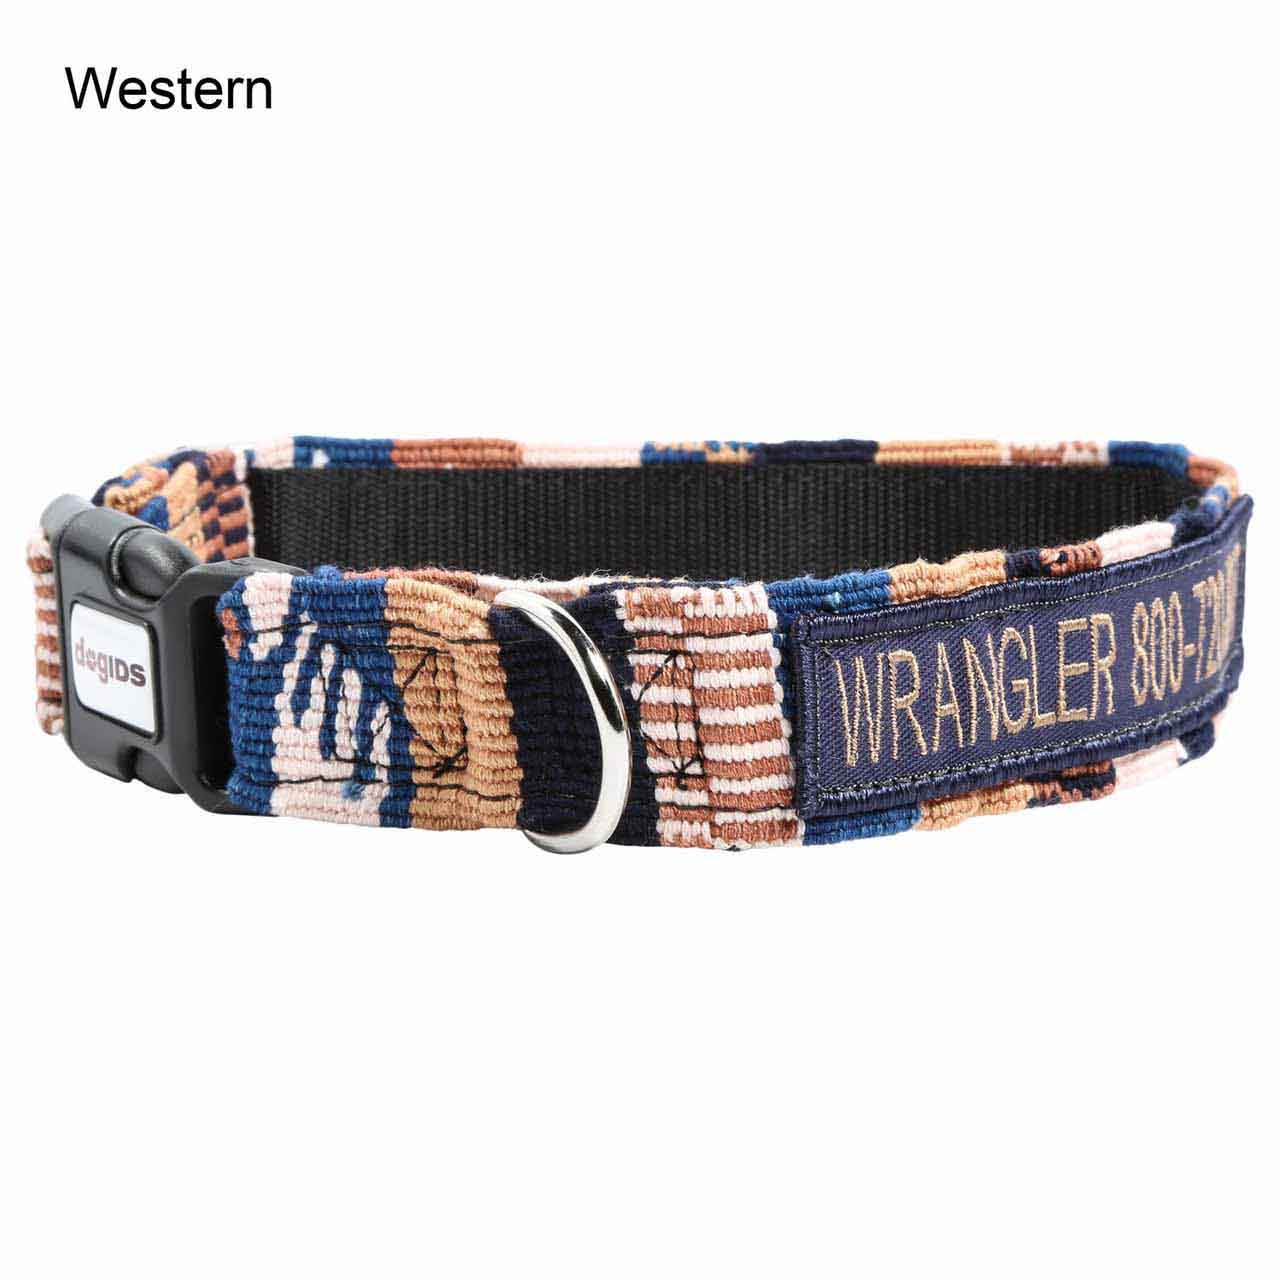 Embroidered Maya Personalized Dog Collar Western